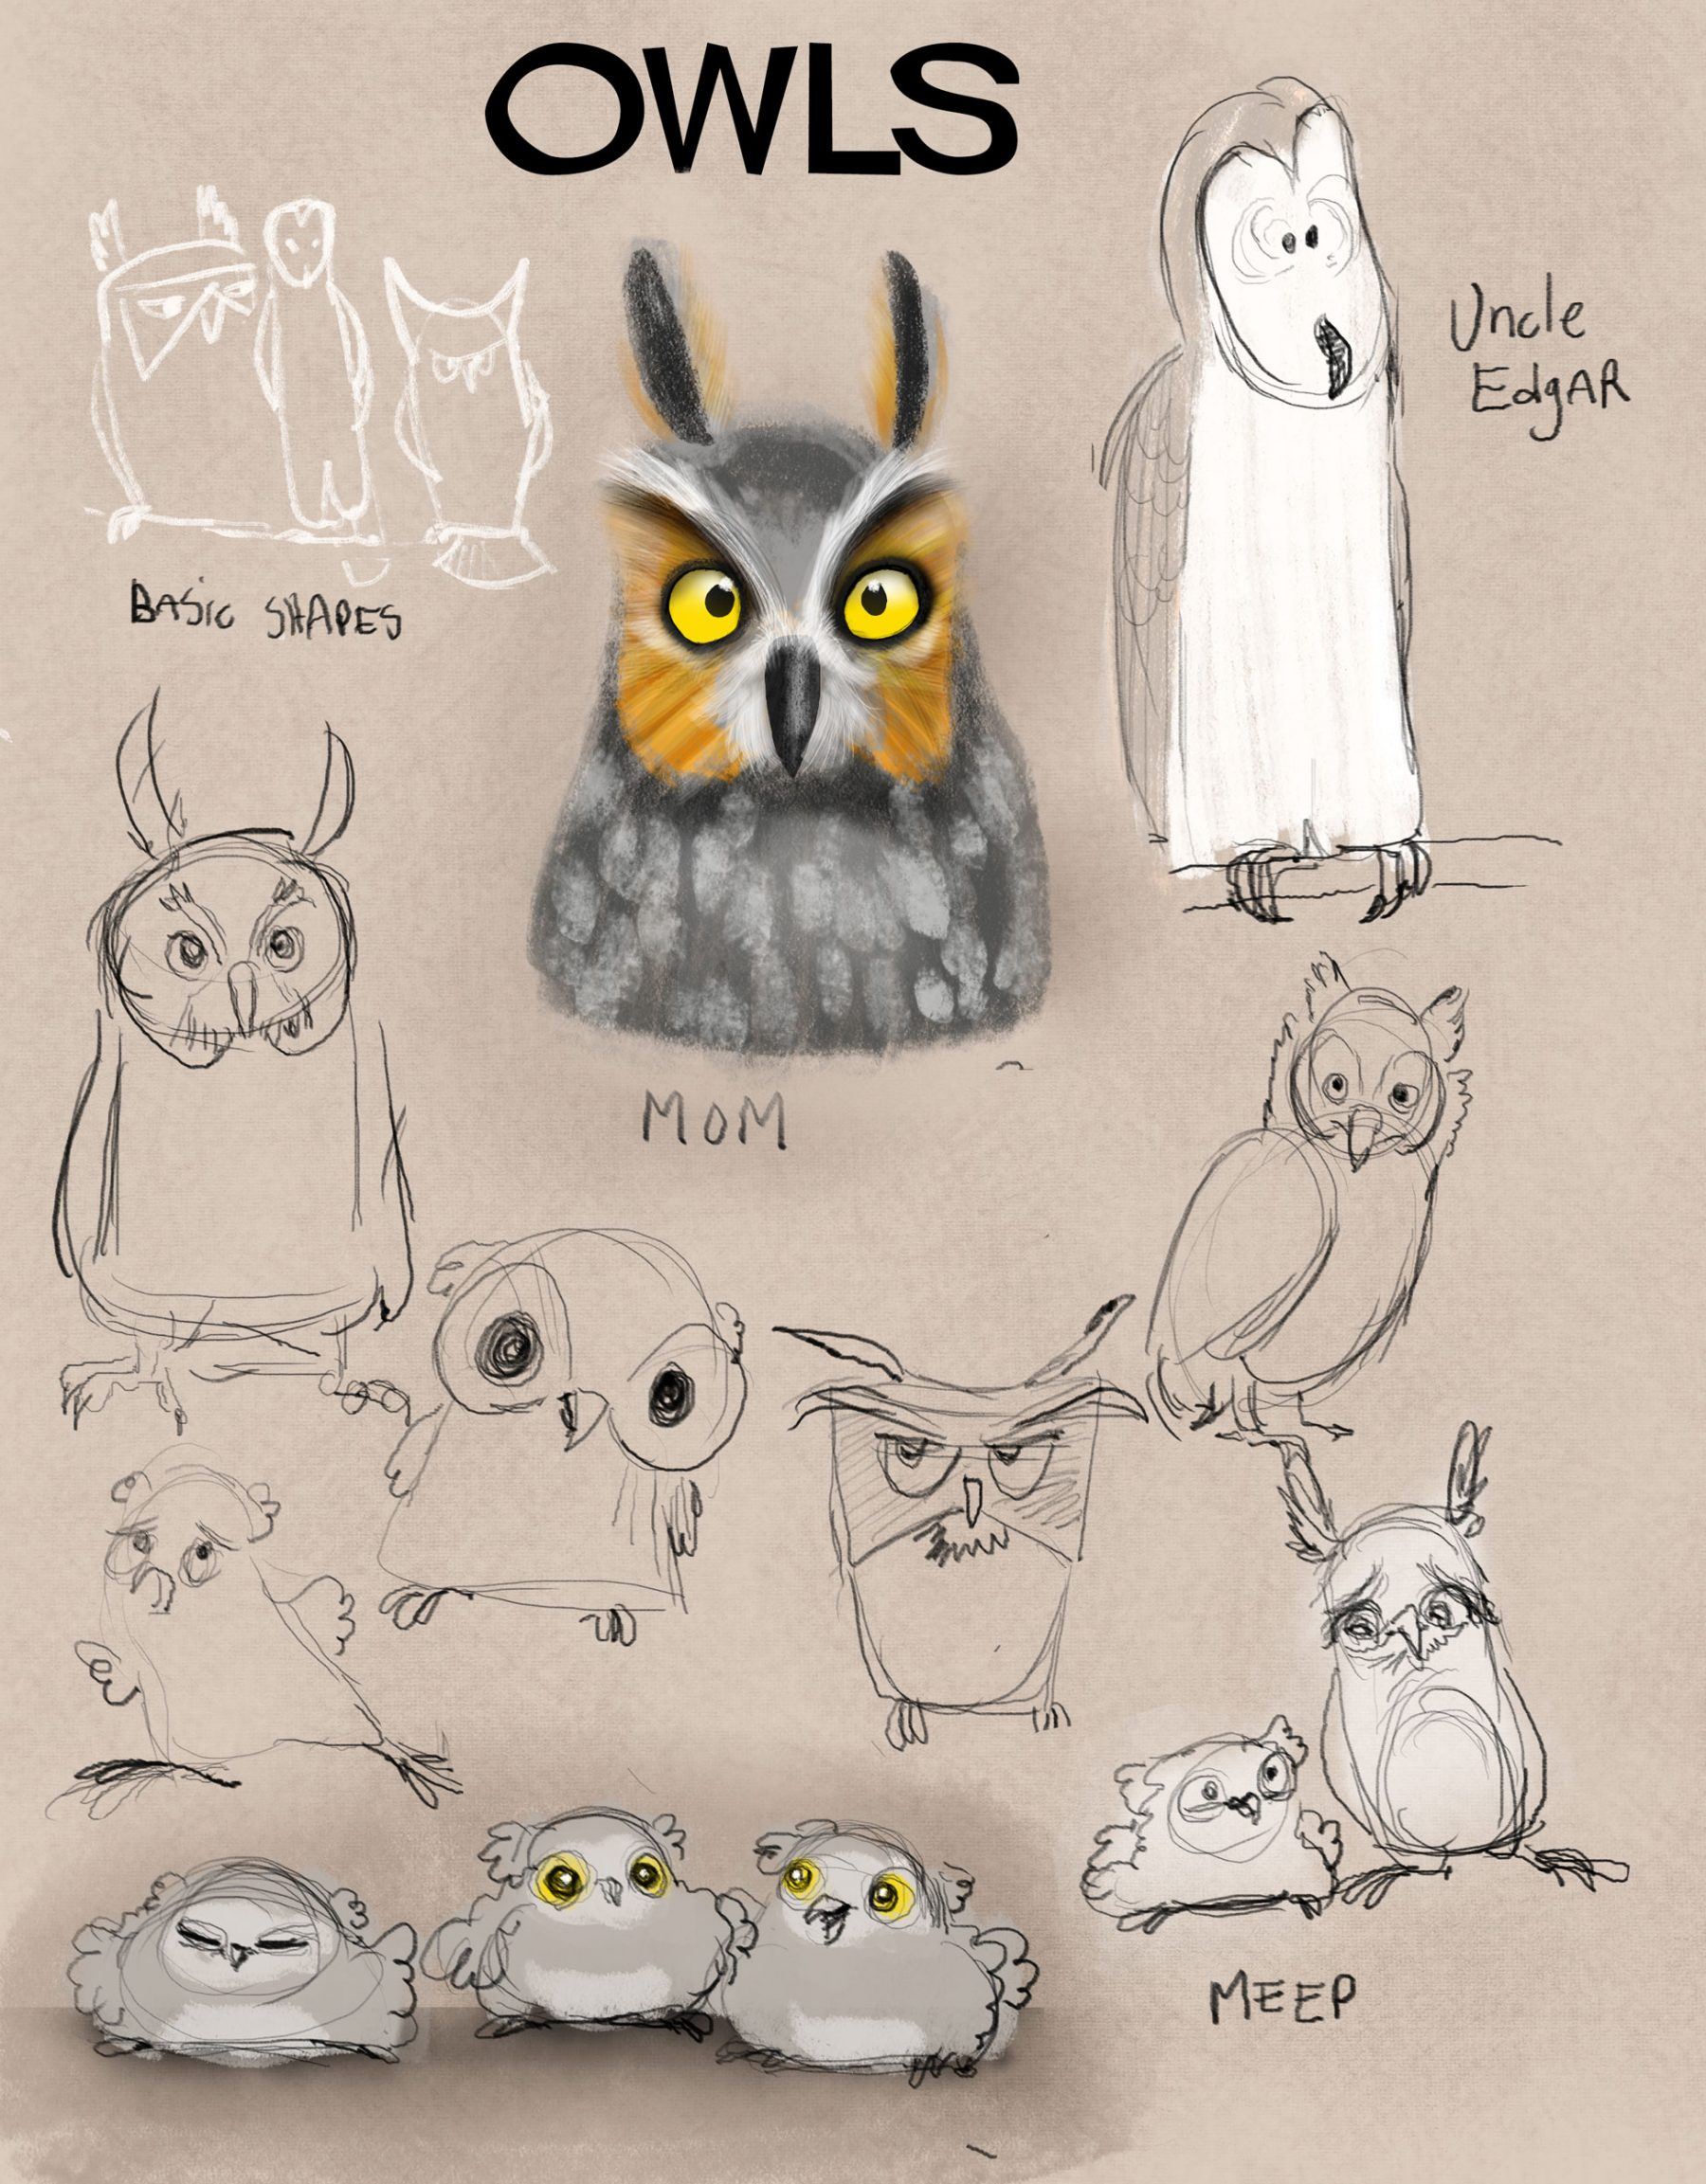 I have a picture book I'm developing about a baby owl. This was some explorations on shape language and possible painting style.